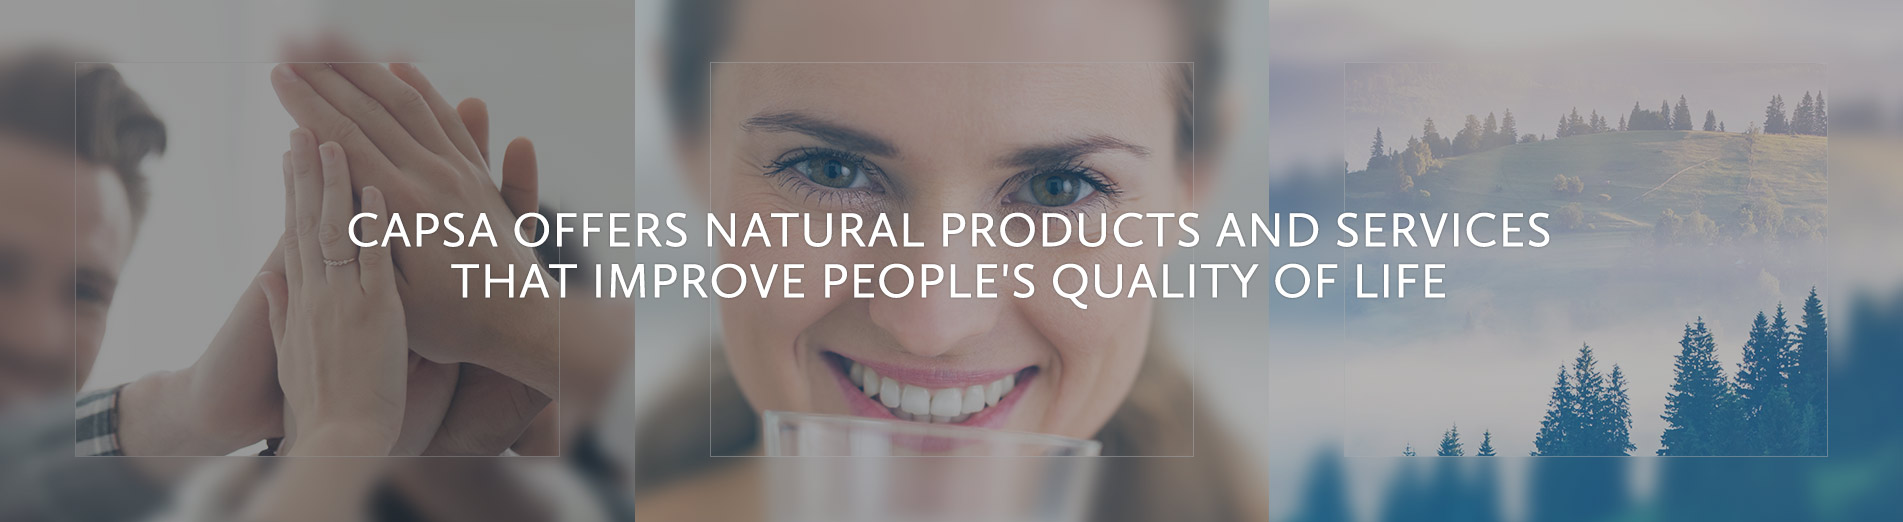 Capsa offers natural products and services that improve people's quality of life